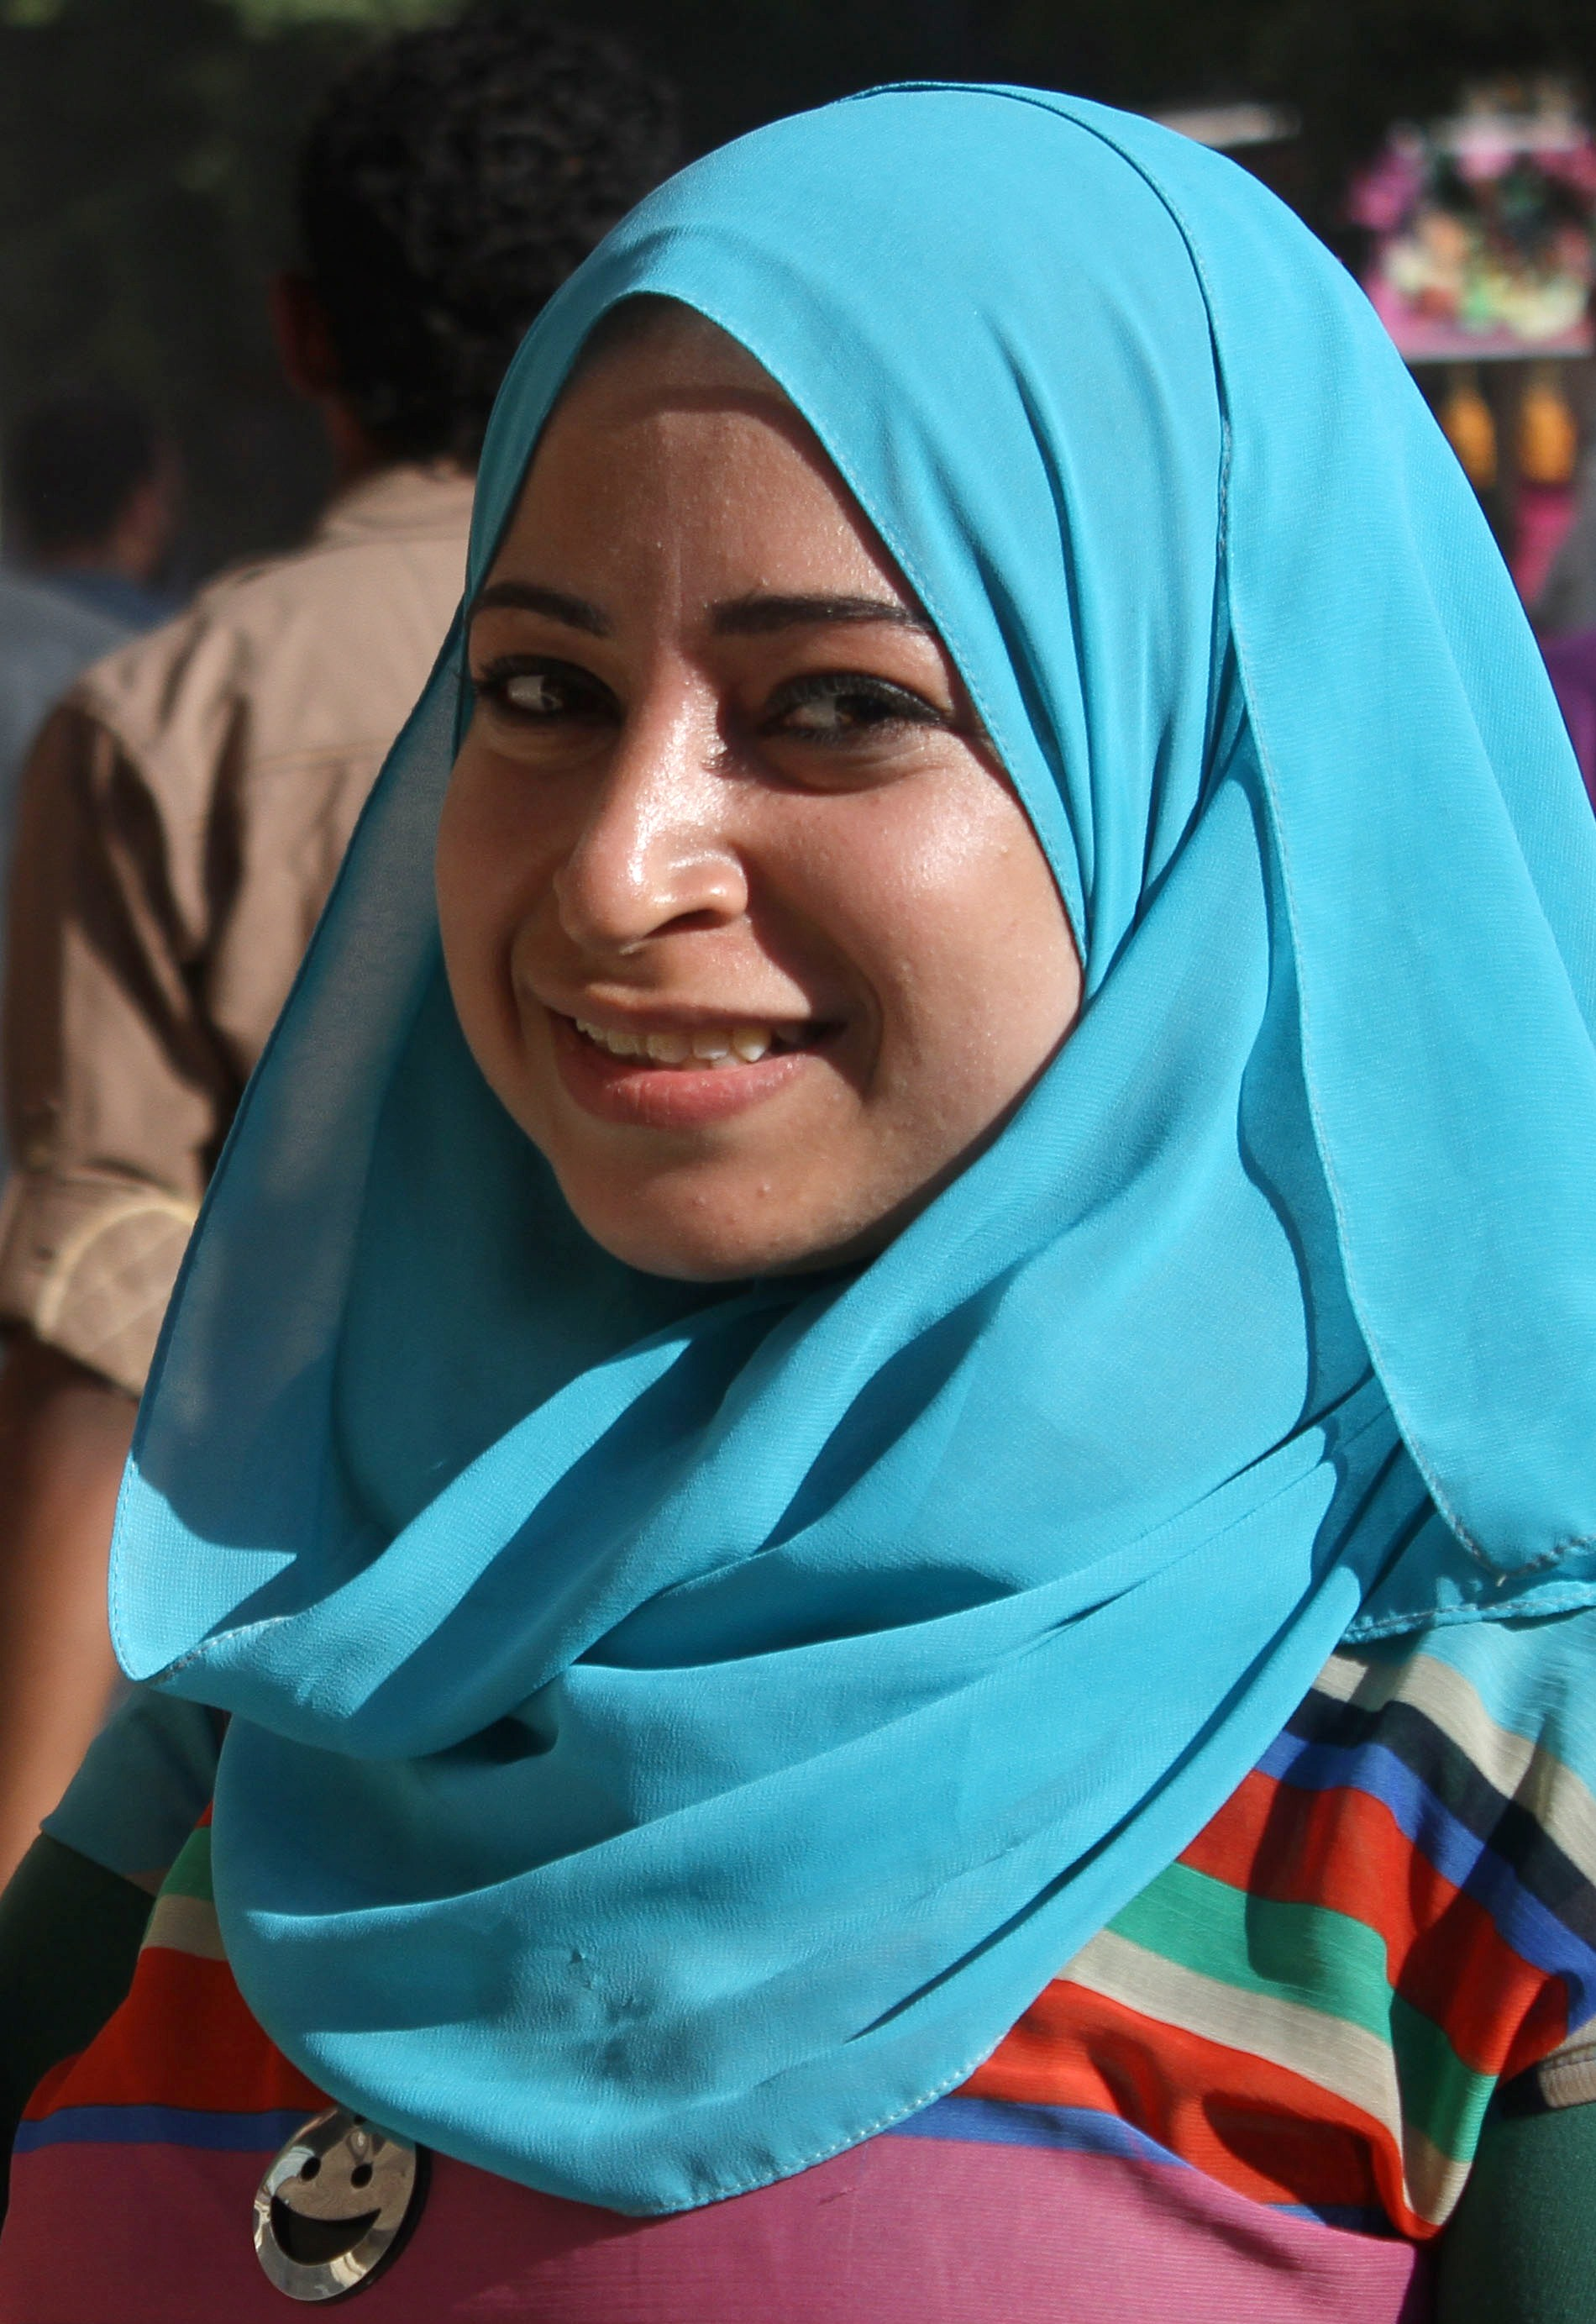 Egyptian journalist, Mayada Ashraf poses as she covers a protest of Islamists against ex-army chief Abdel Fattah al-Sisi's presidency bid on March 28, 2014 in the northern neighbourhood of Ein Shams, outside Cairo. Mayada Ashraf, who worked for privately owned Al-Dustour newspaper and freelanced for news website Masr Alarabia, was shot in the head while covering the clashes.   (AFP PHOTO / MAHMOUD BAKKAR)